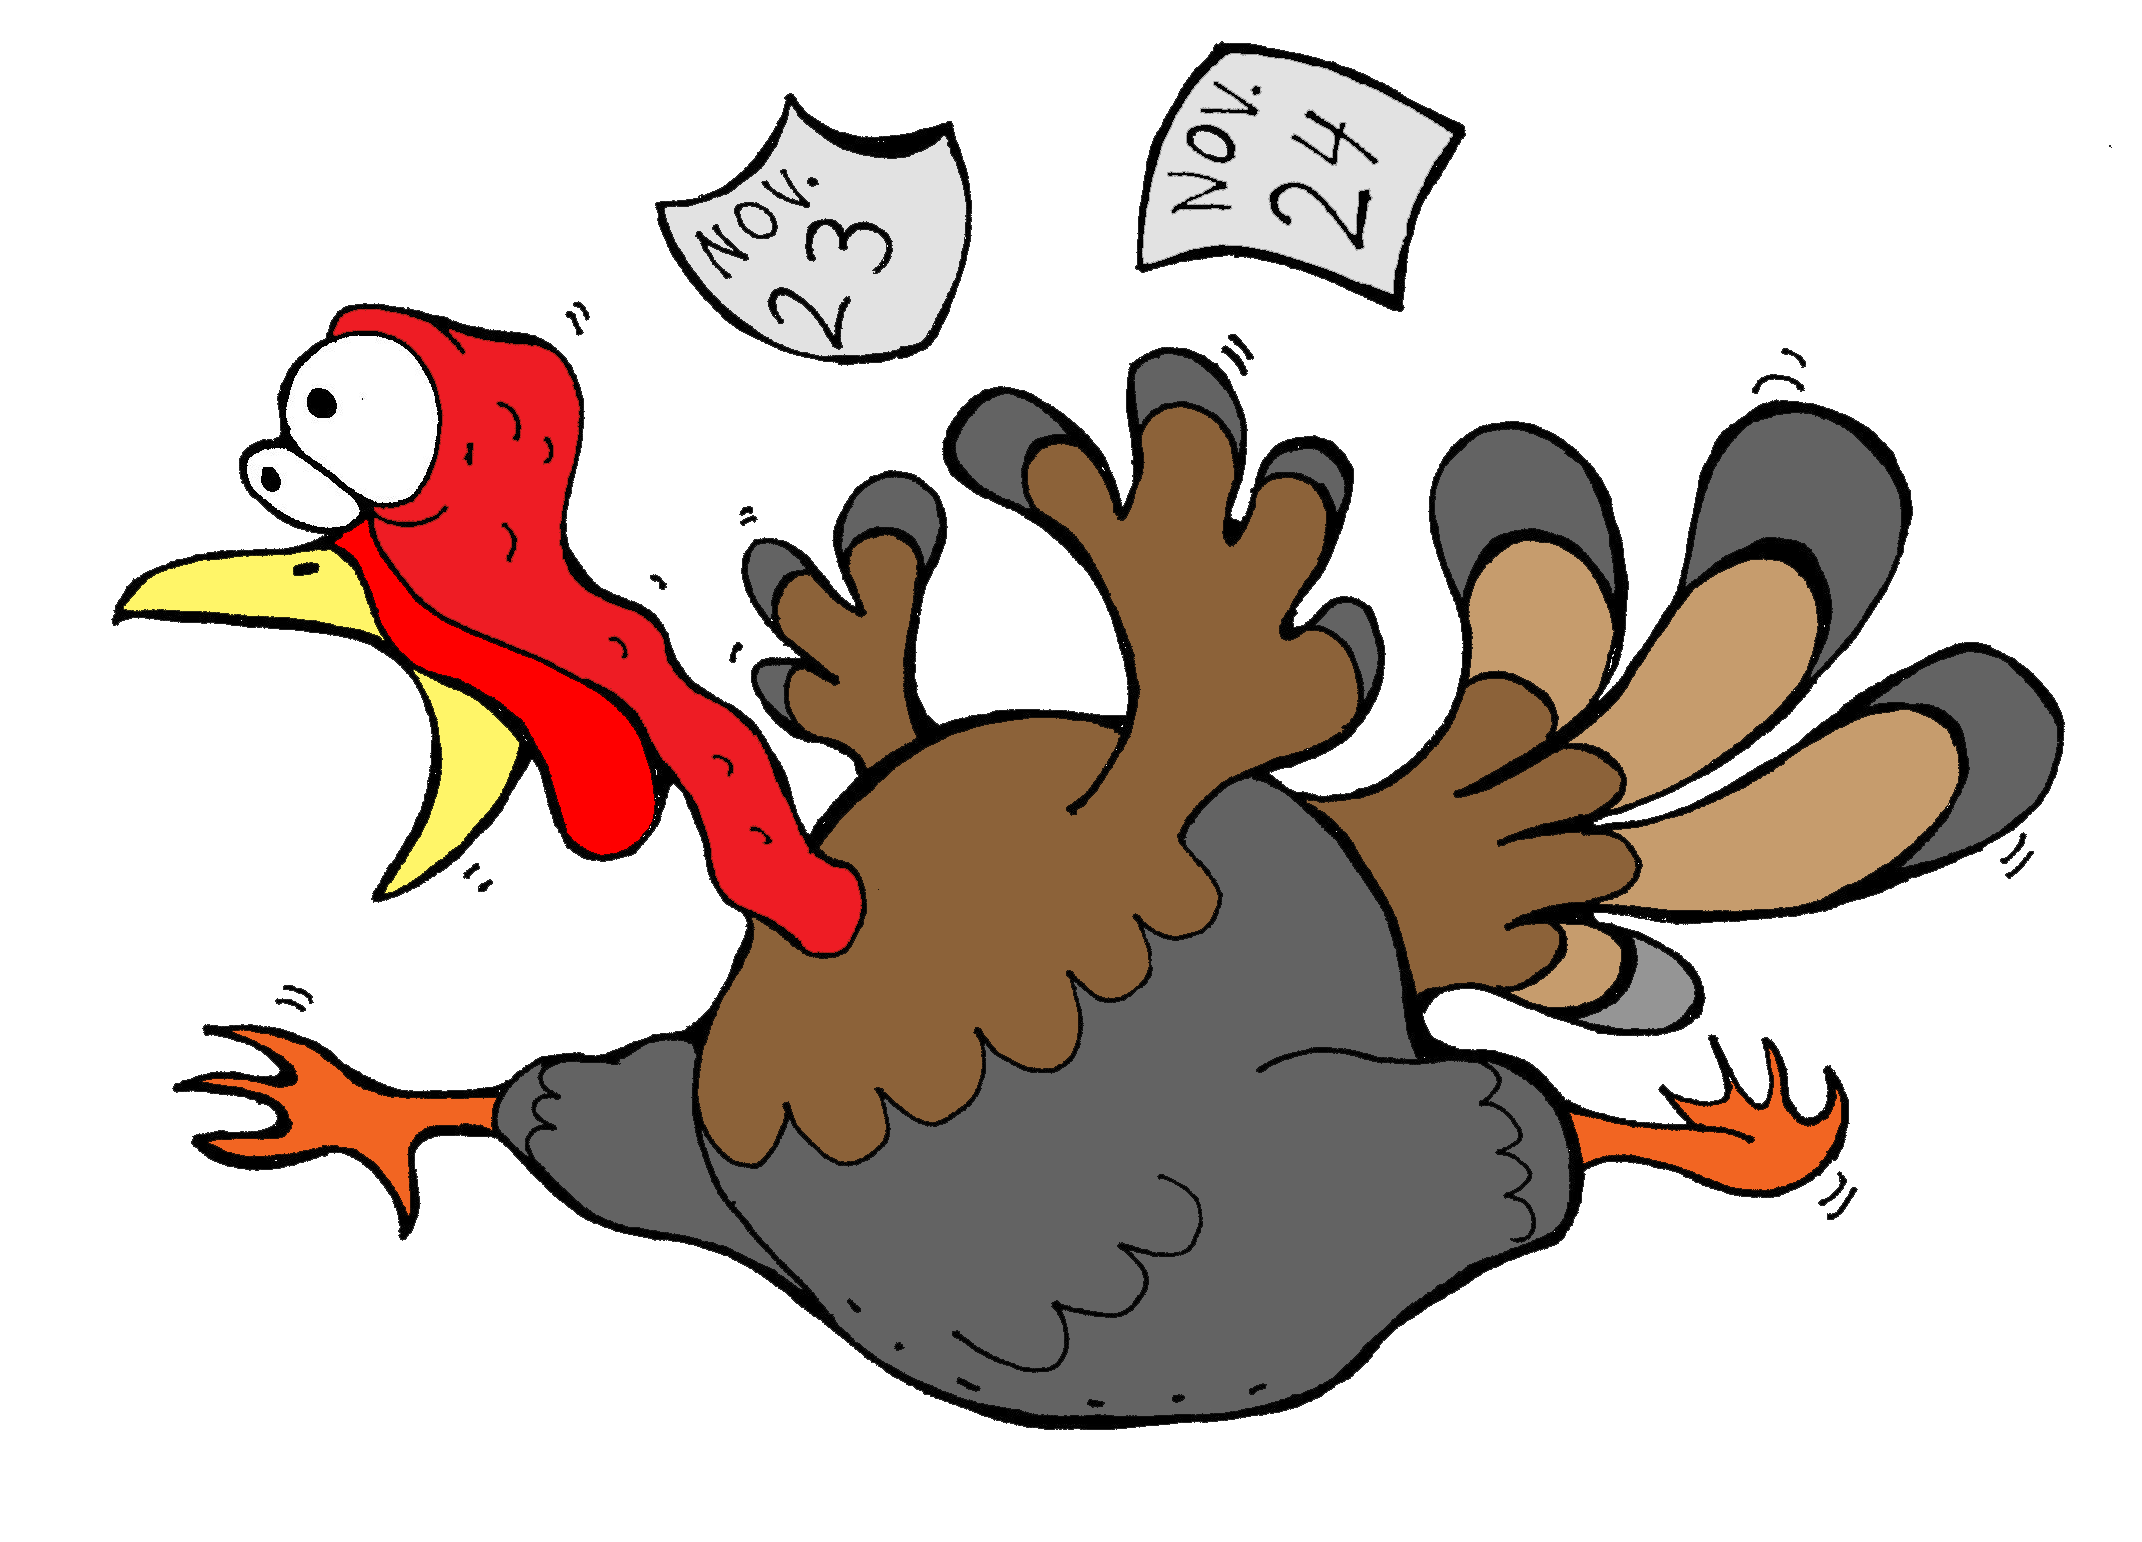 scared thanksgiving turkey clipart clip art for teachers rh pinterest com Running Turkey Silly Turkey Clip Art